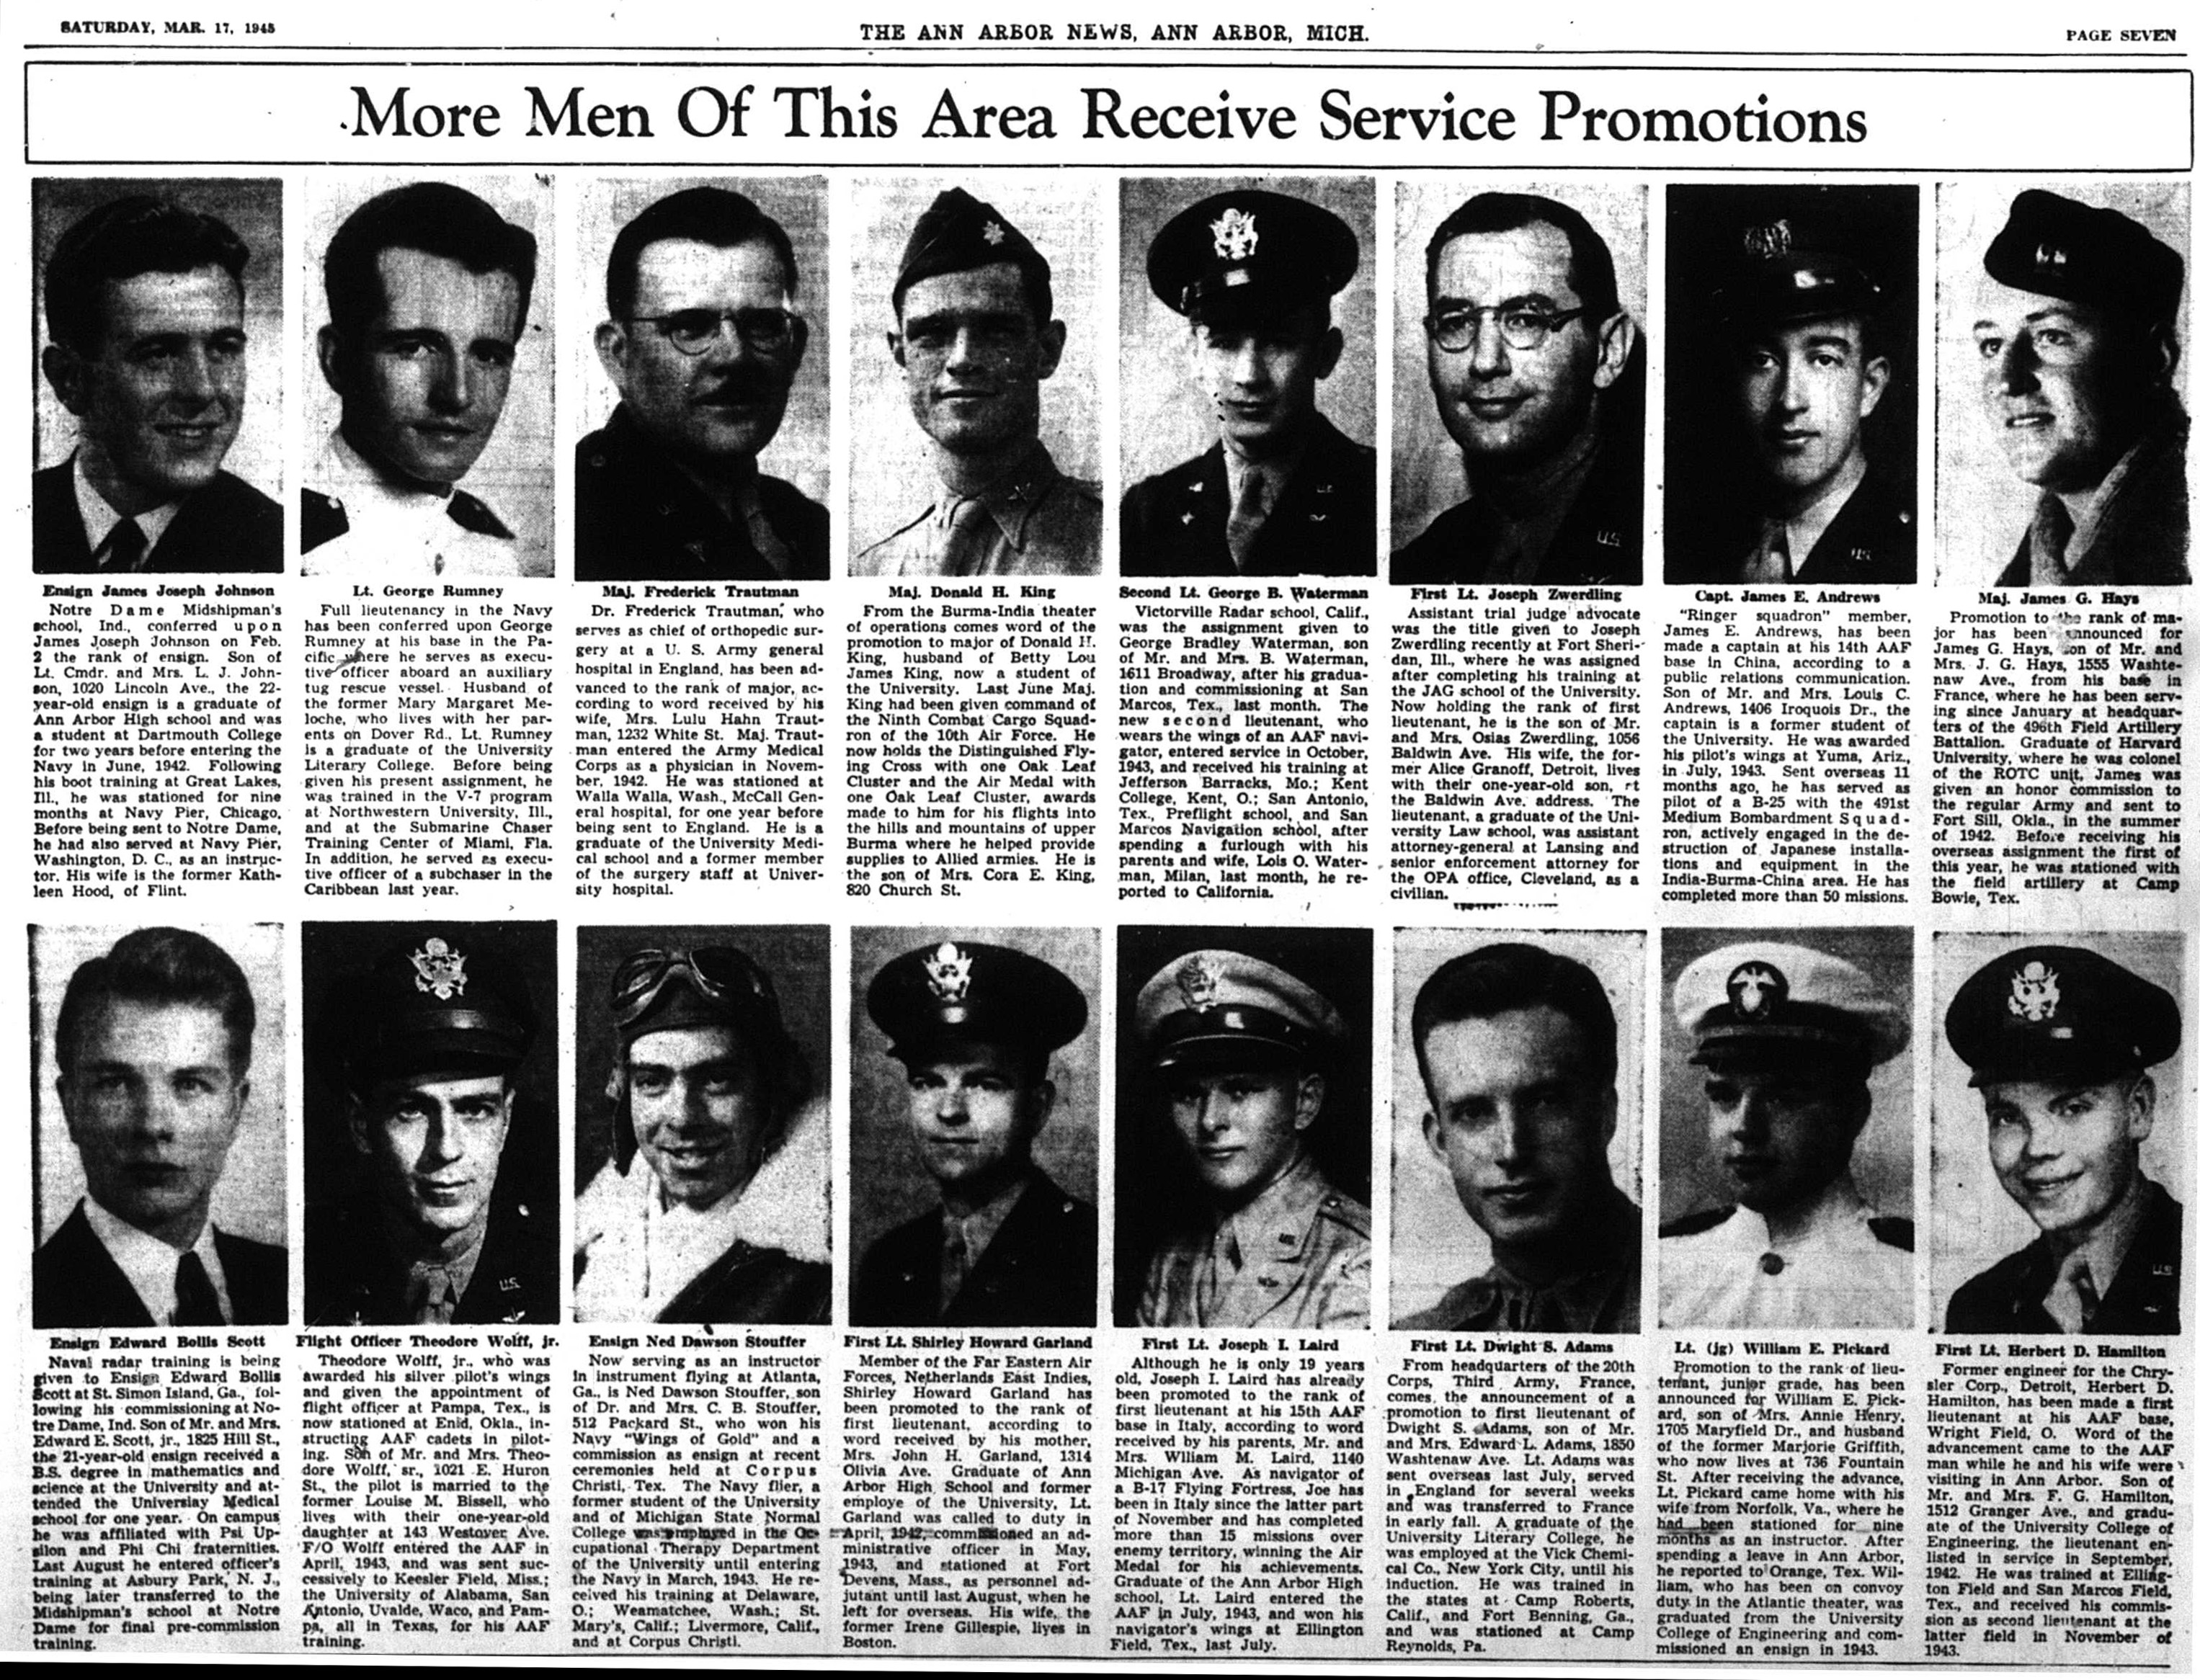 More Men Of This Area Receive Service Promotions image